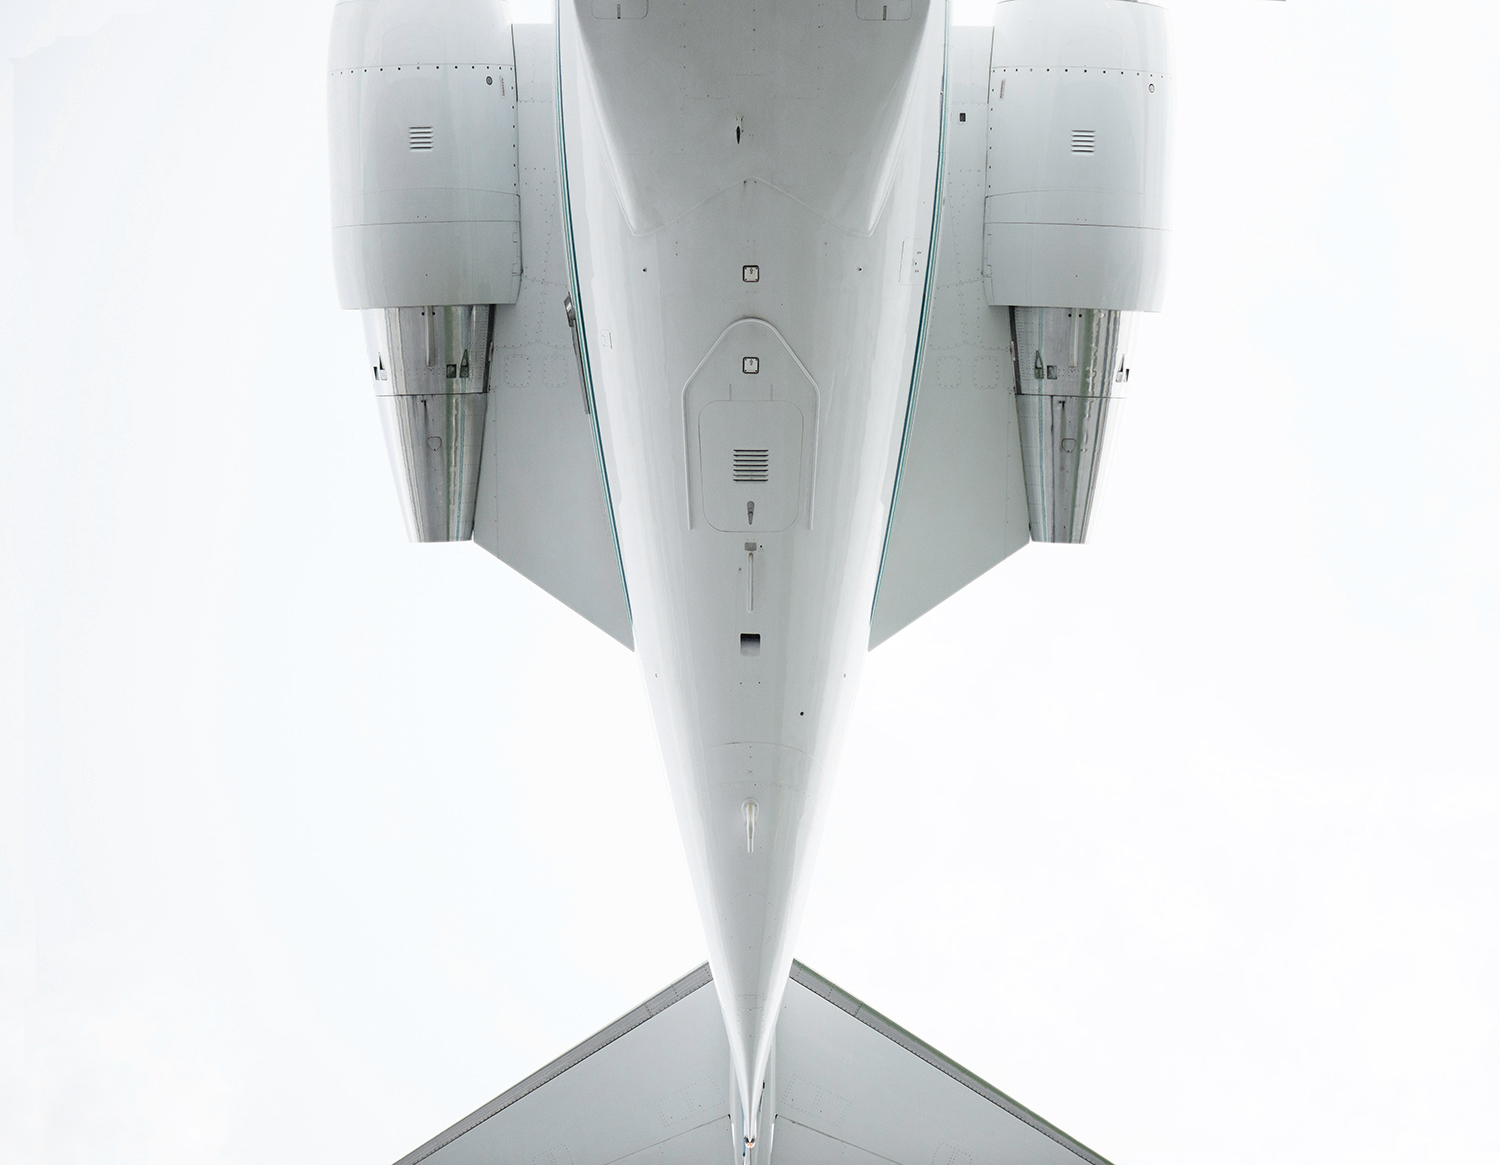 The Laird Co Challenger Tail Engines Aviation Avgeek White Airplane Private Jet Photography for site.jpg